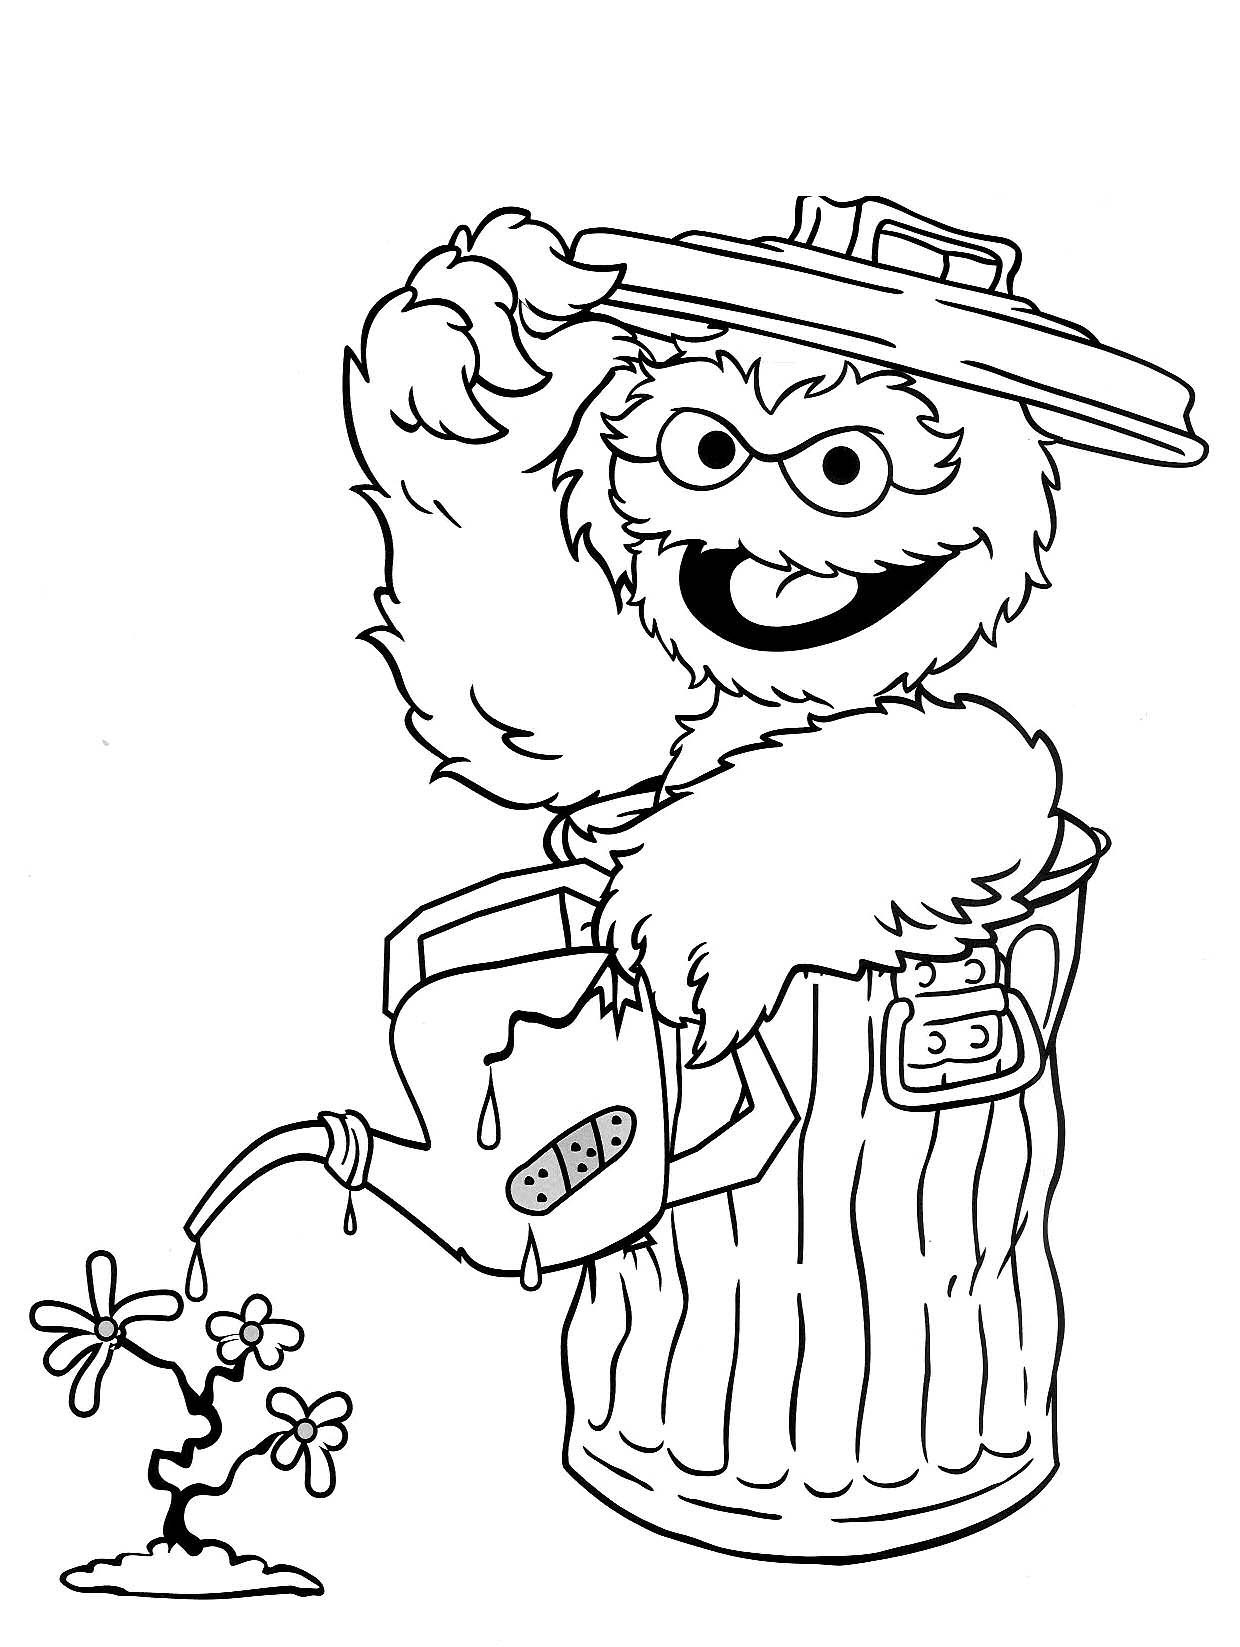 Elmo coloring activities - Elmo Coloring Sheets